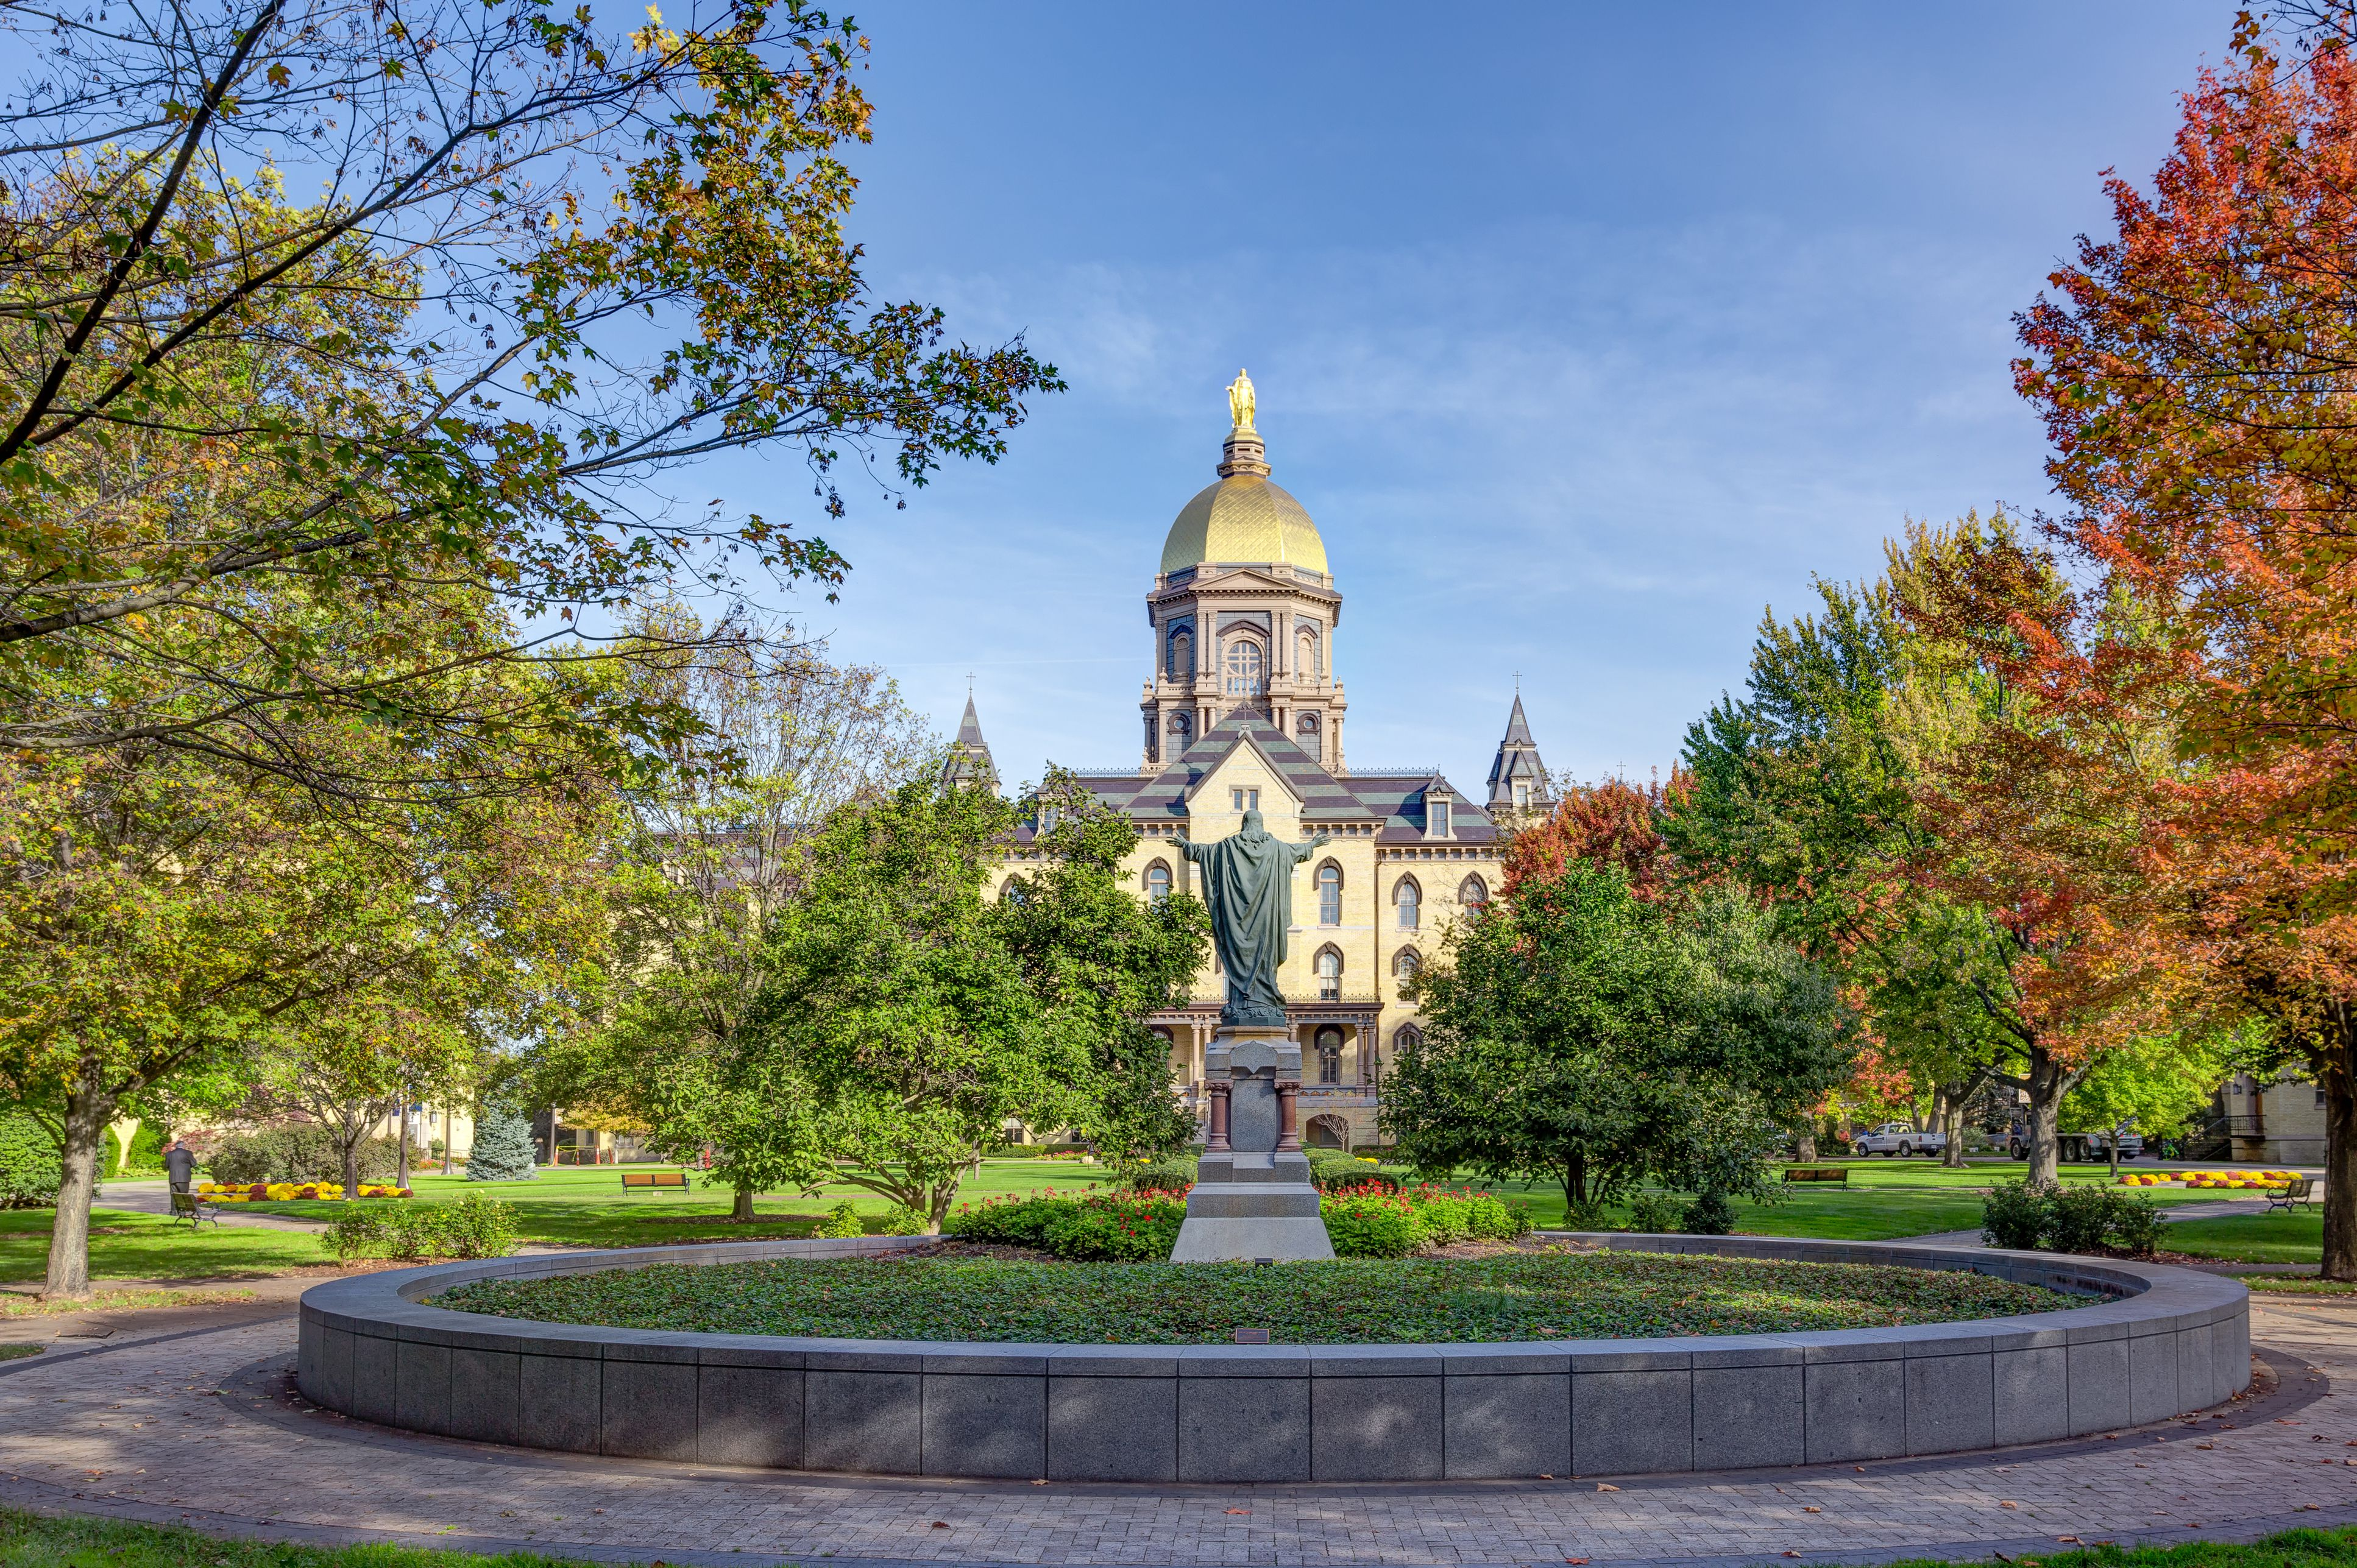 Jesus Statue and Golden Dome at Notre Dame University